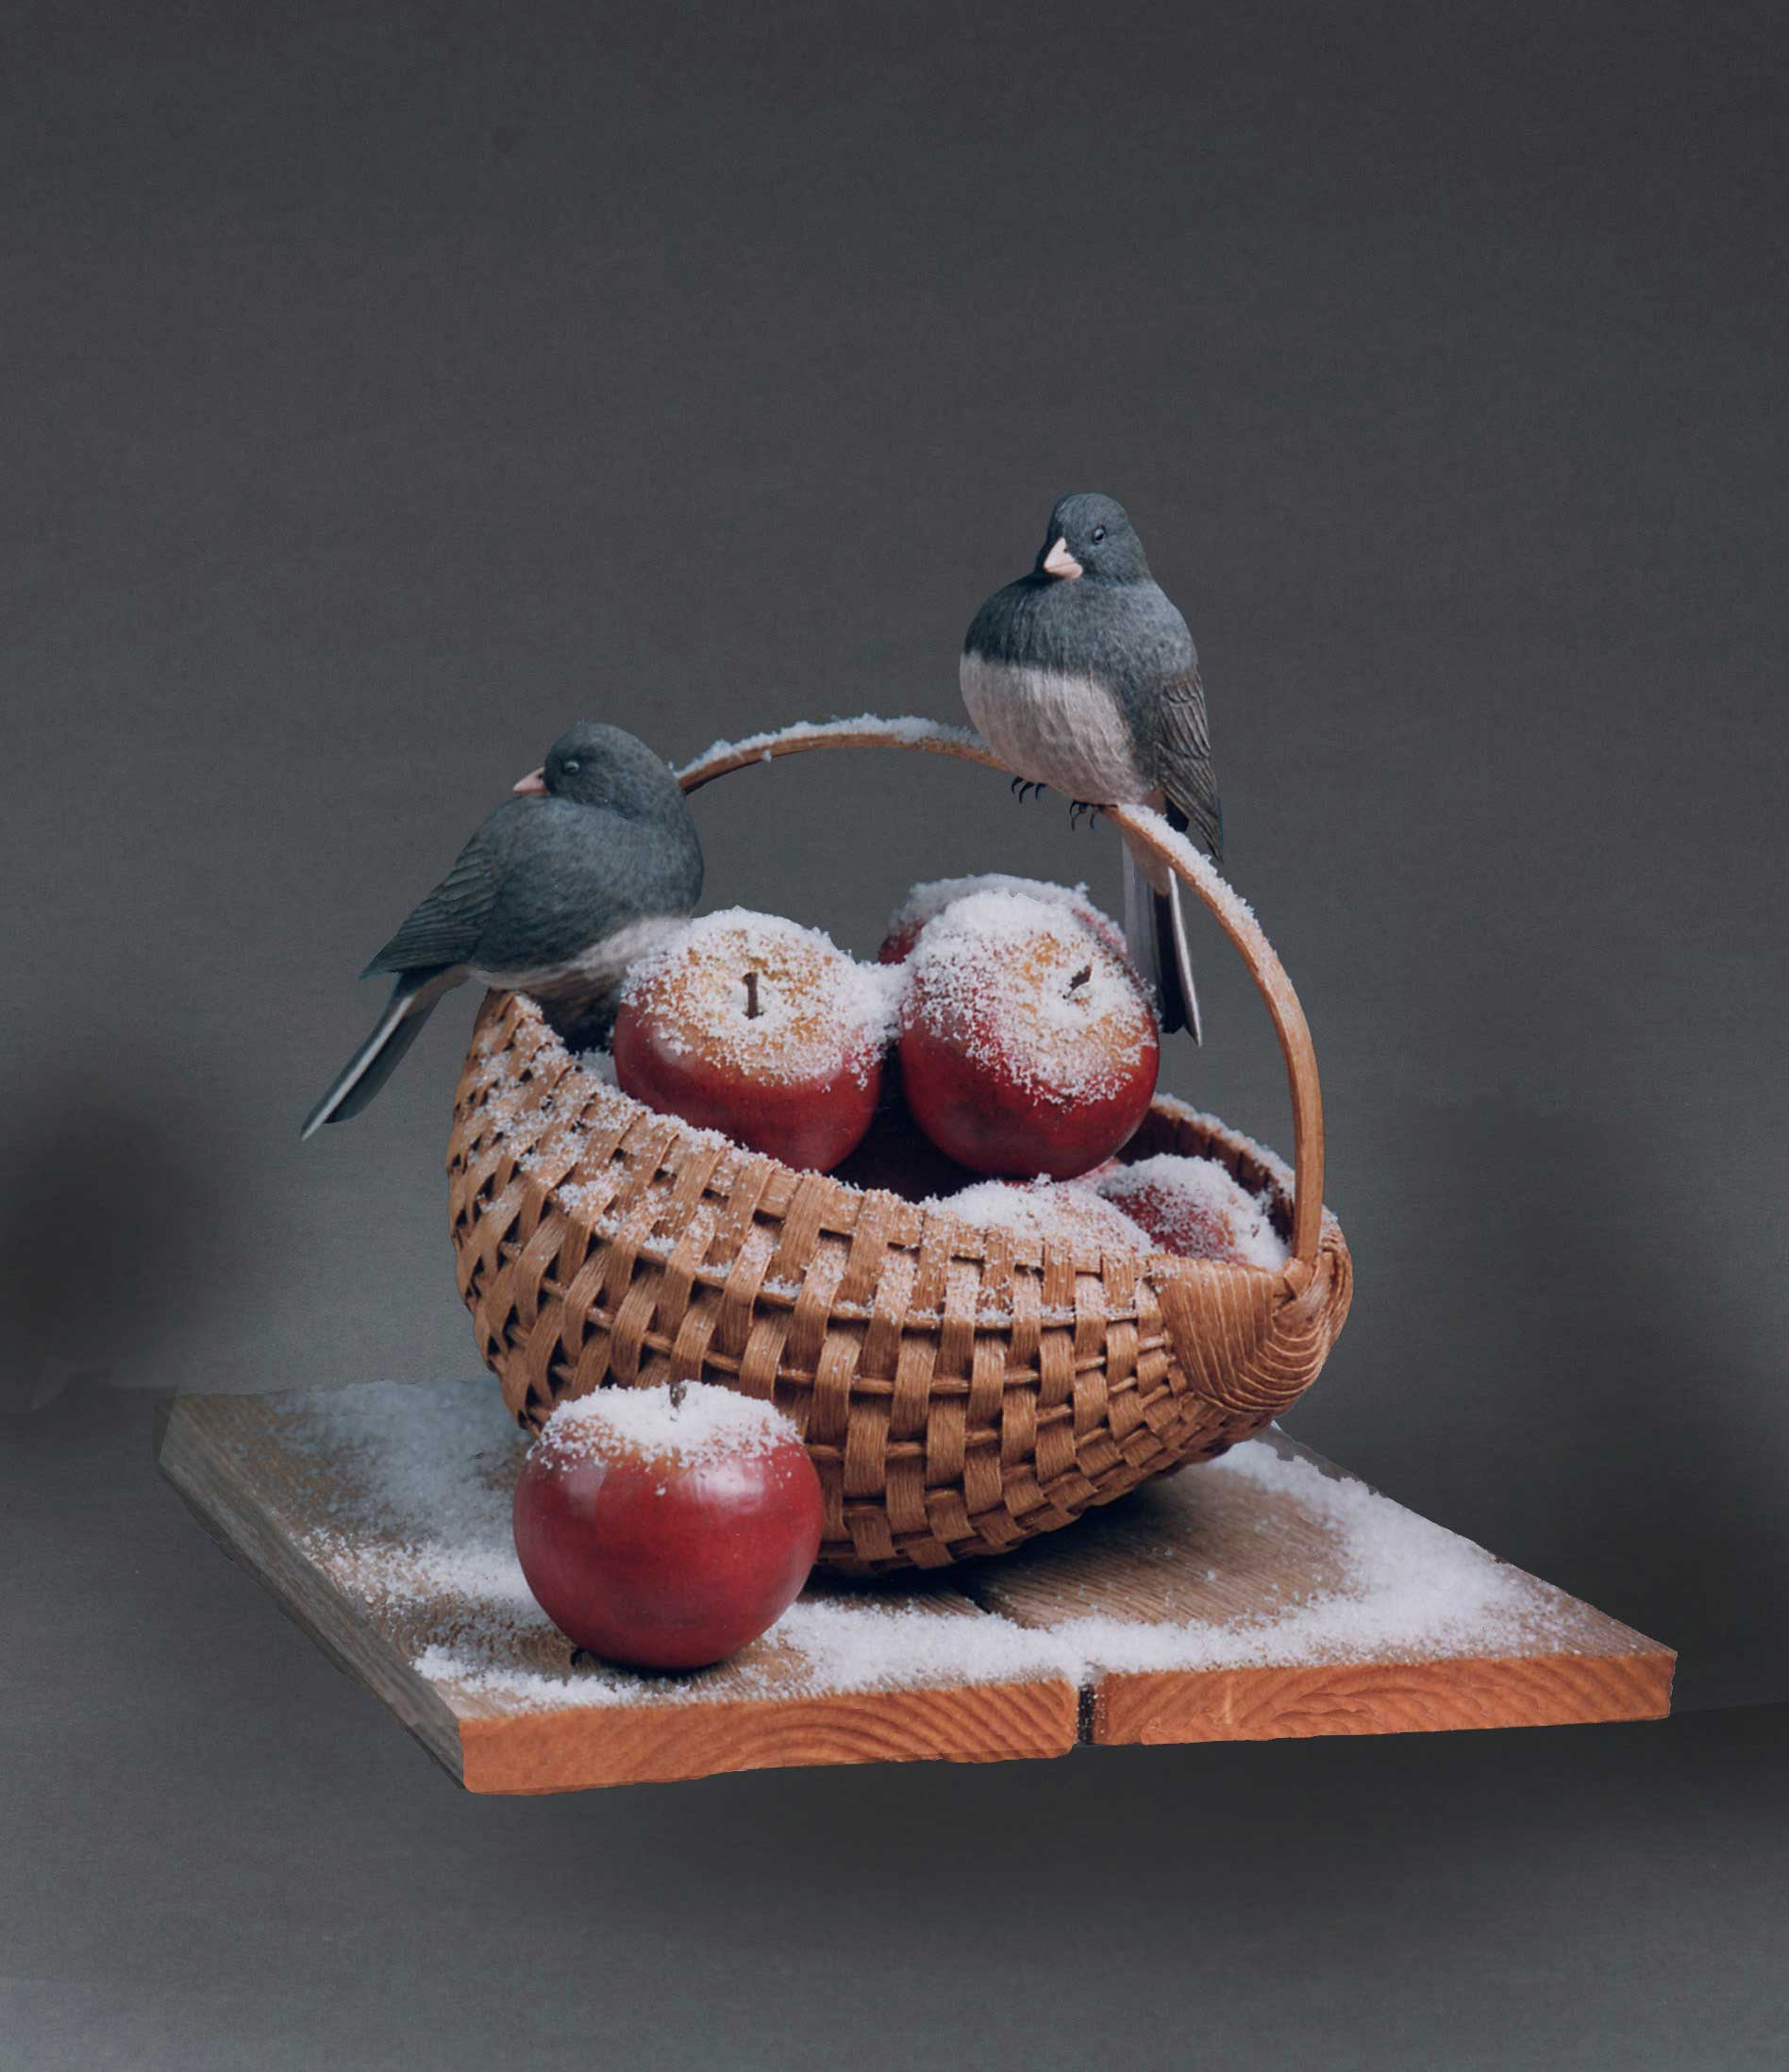 photo of Pete Lupo's Artwork - Junco's and Apples in a snow covered basket